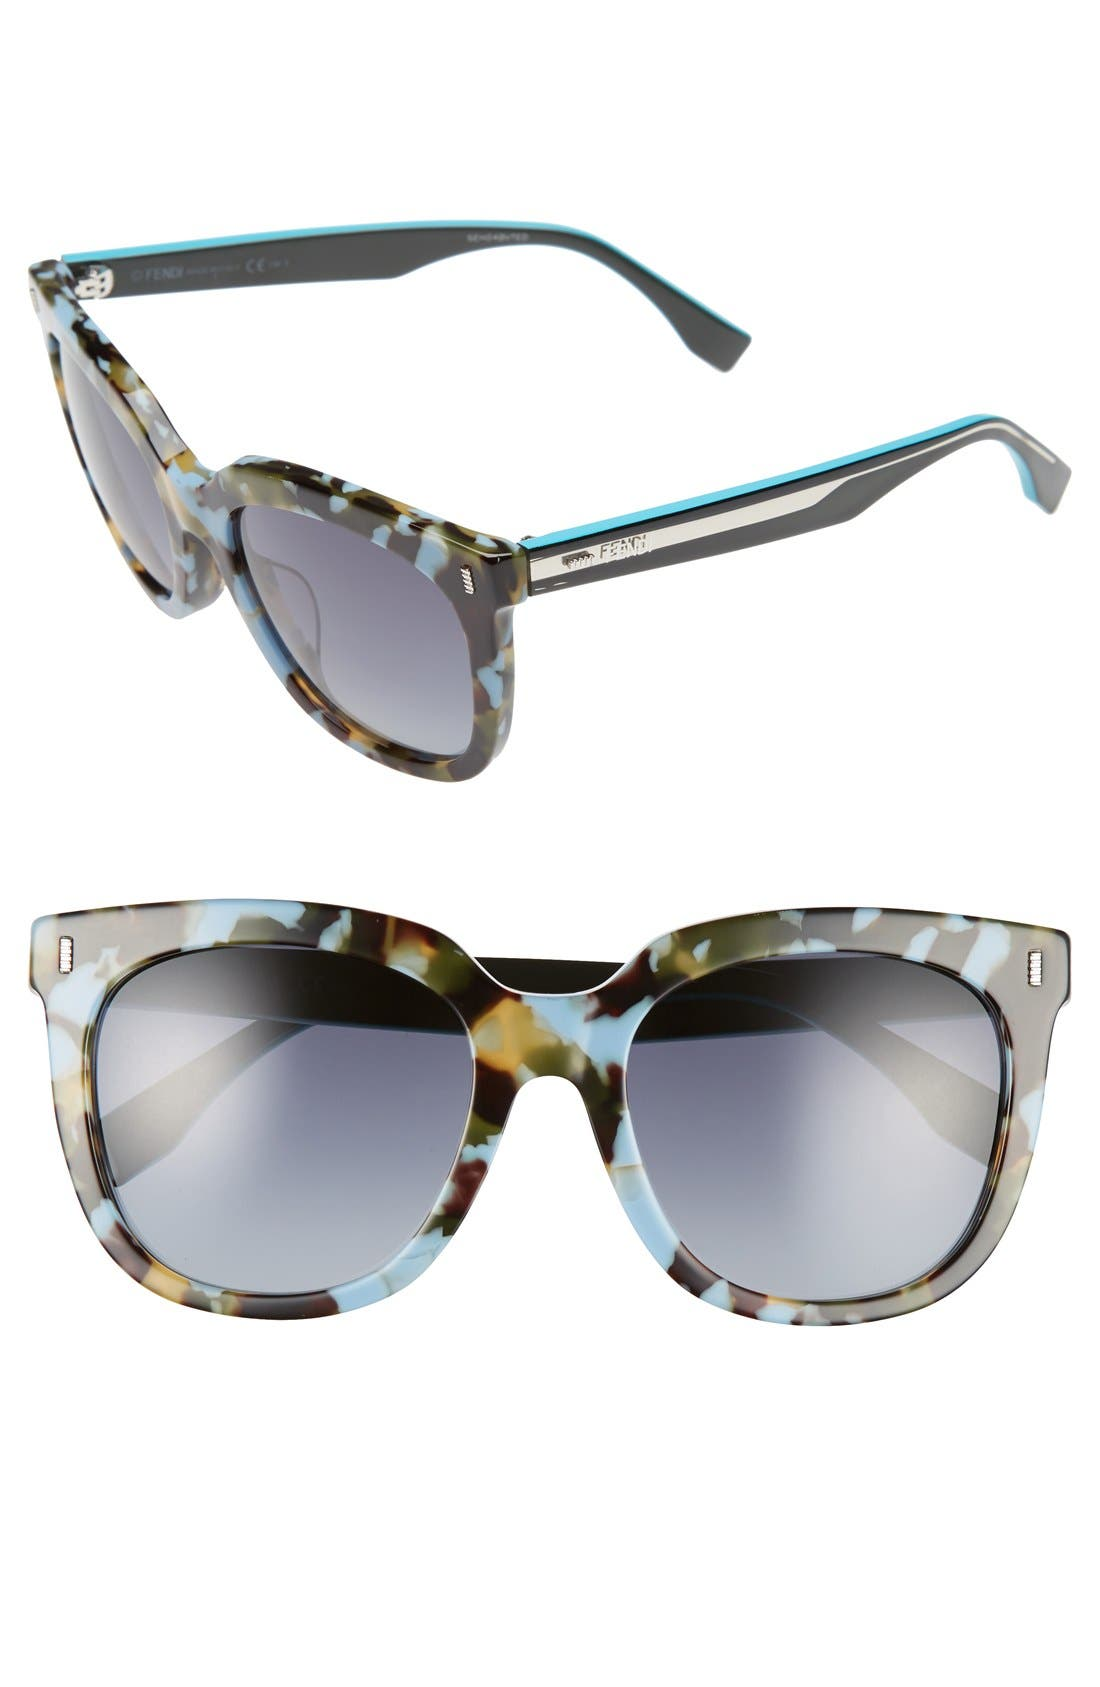 FENDI 54mm Retro Sunglasses